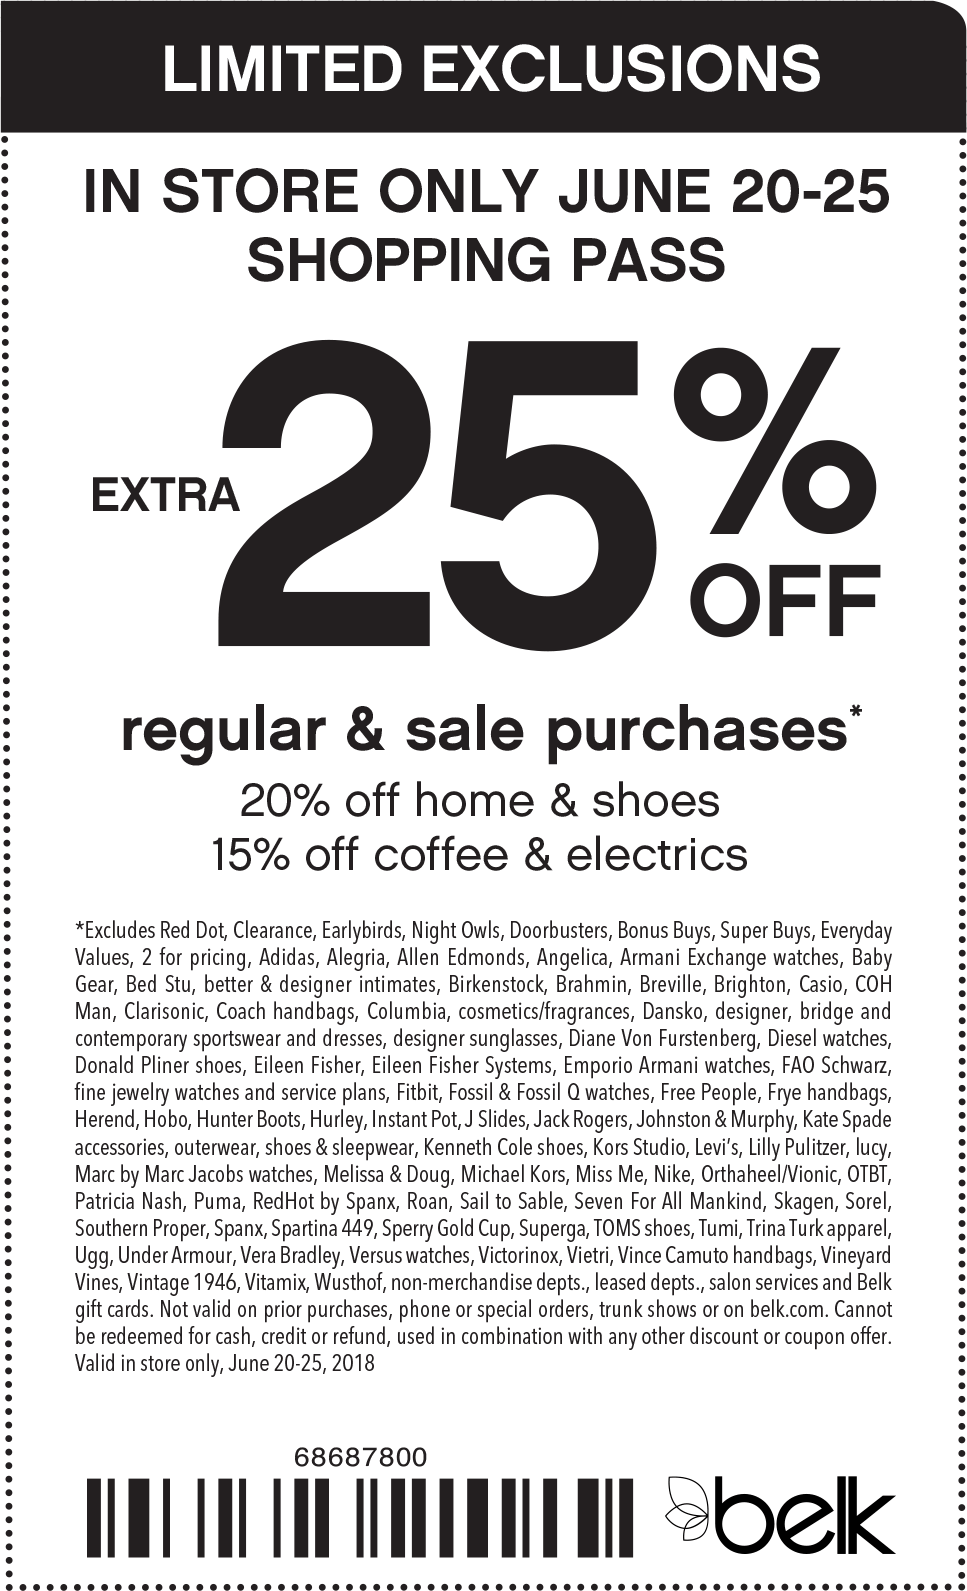 Belk Coupon March 2019 Extra 25% off at Belk